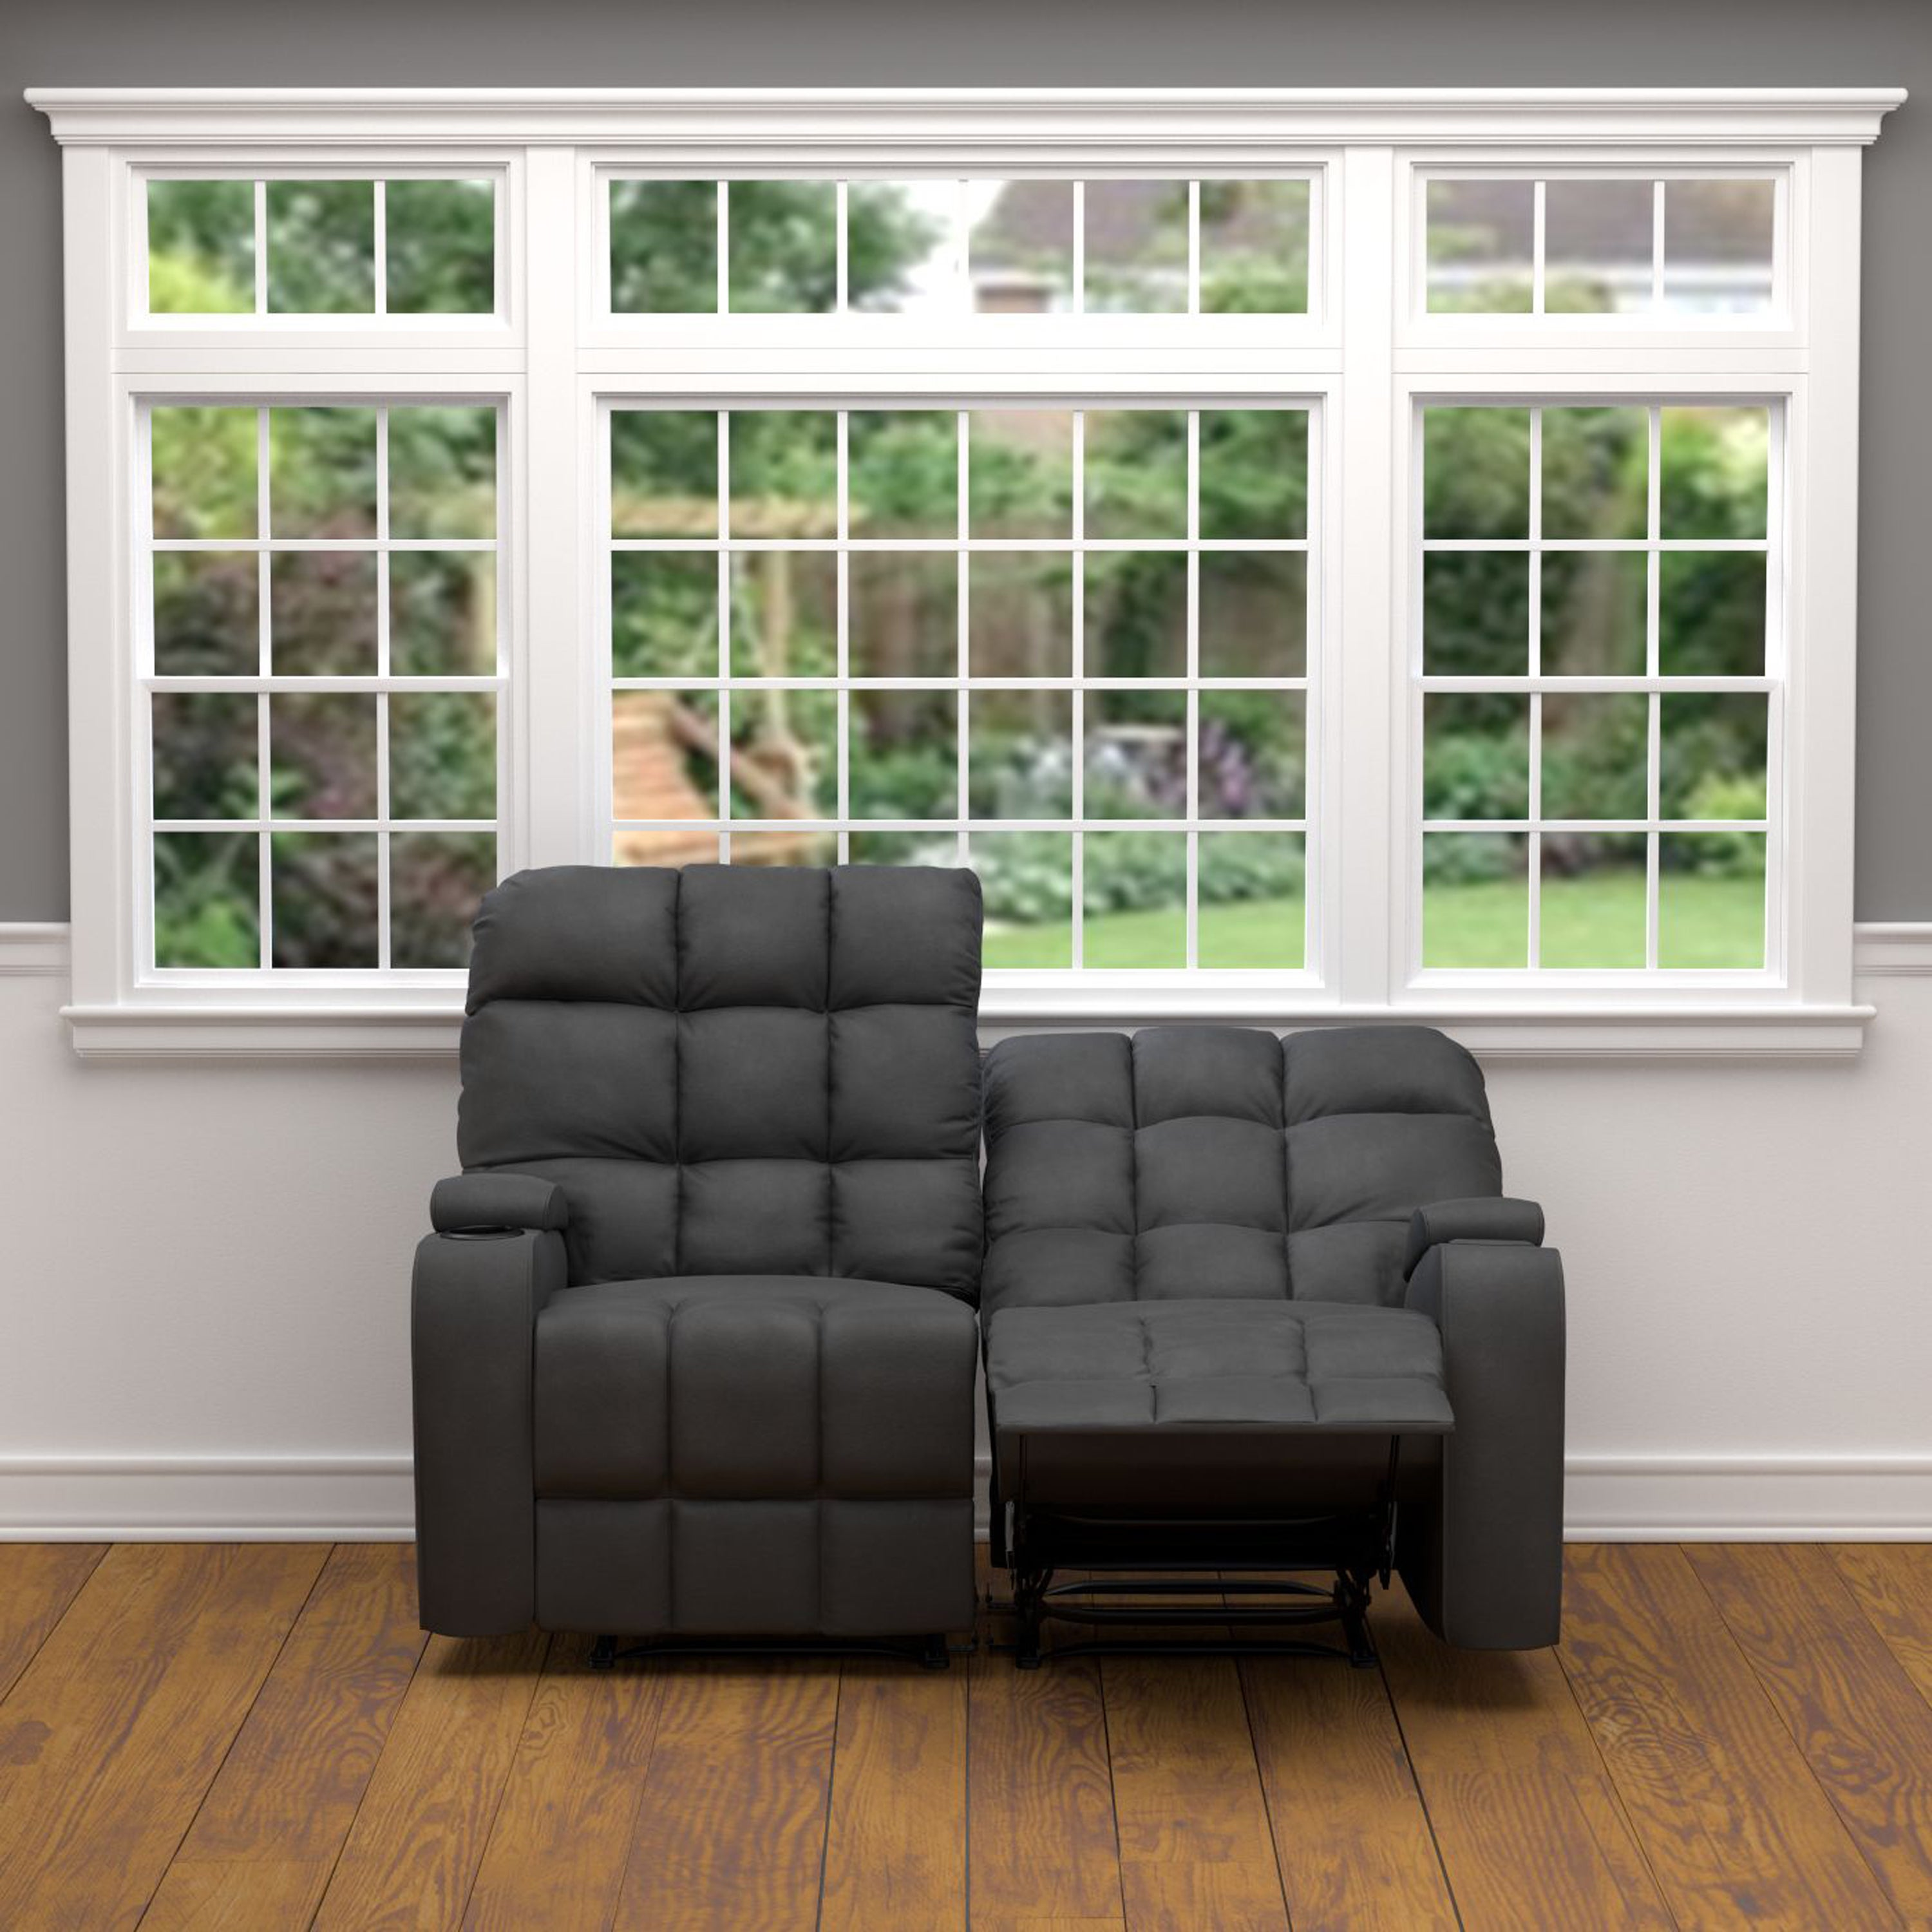 Shop prolounger grey microfiber wall hugger storage 2 seat reclining loveseat free shipping on orders over 45 overstock com 12663642